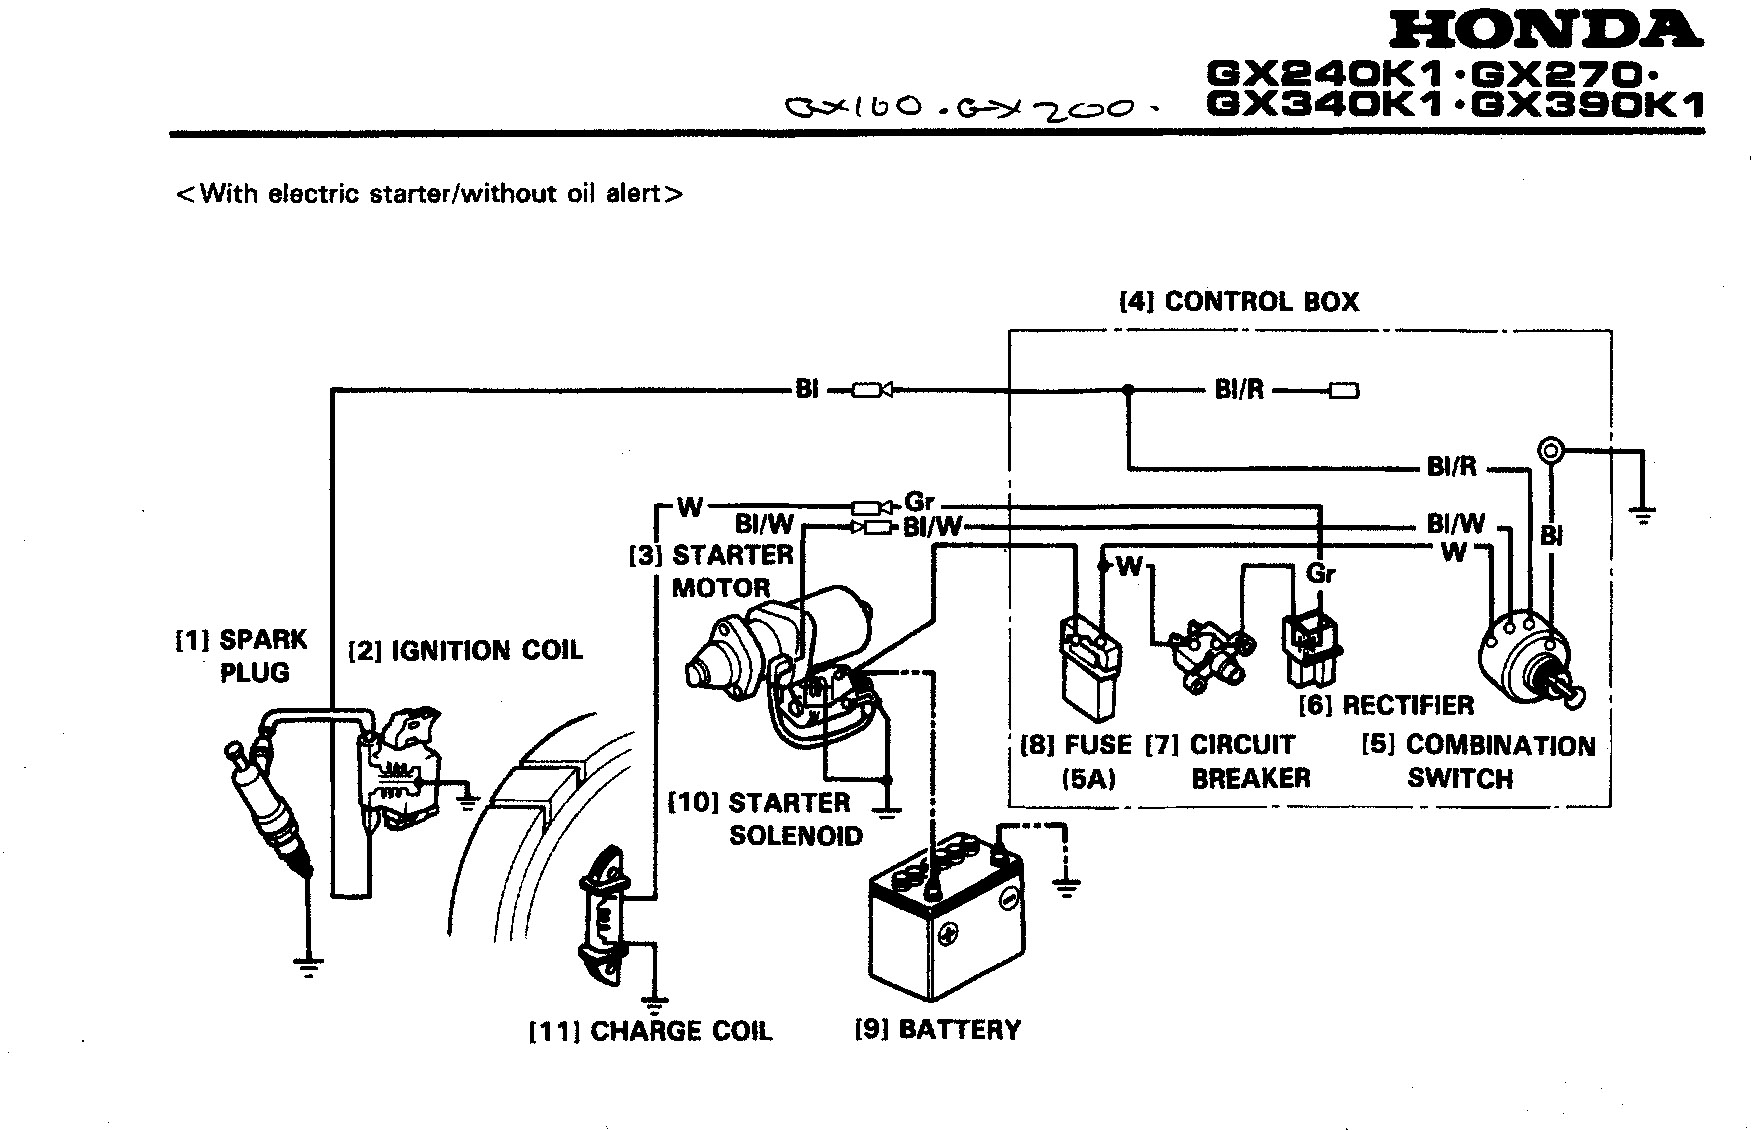 Carburetor Cable Diagrams Free Download Wiring Diagram Schematic